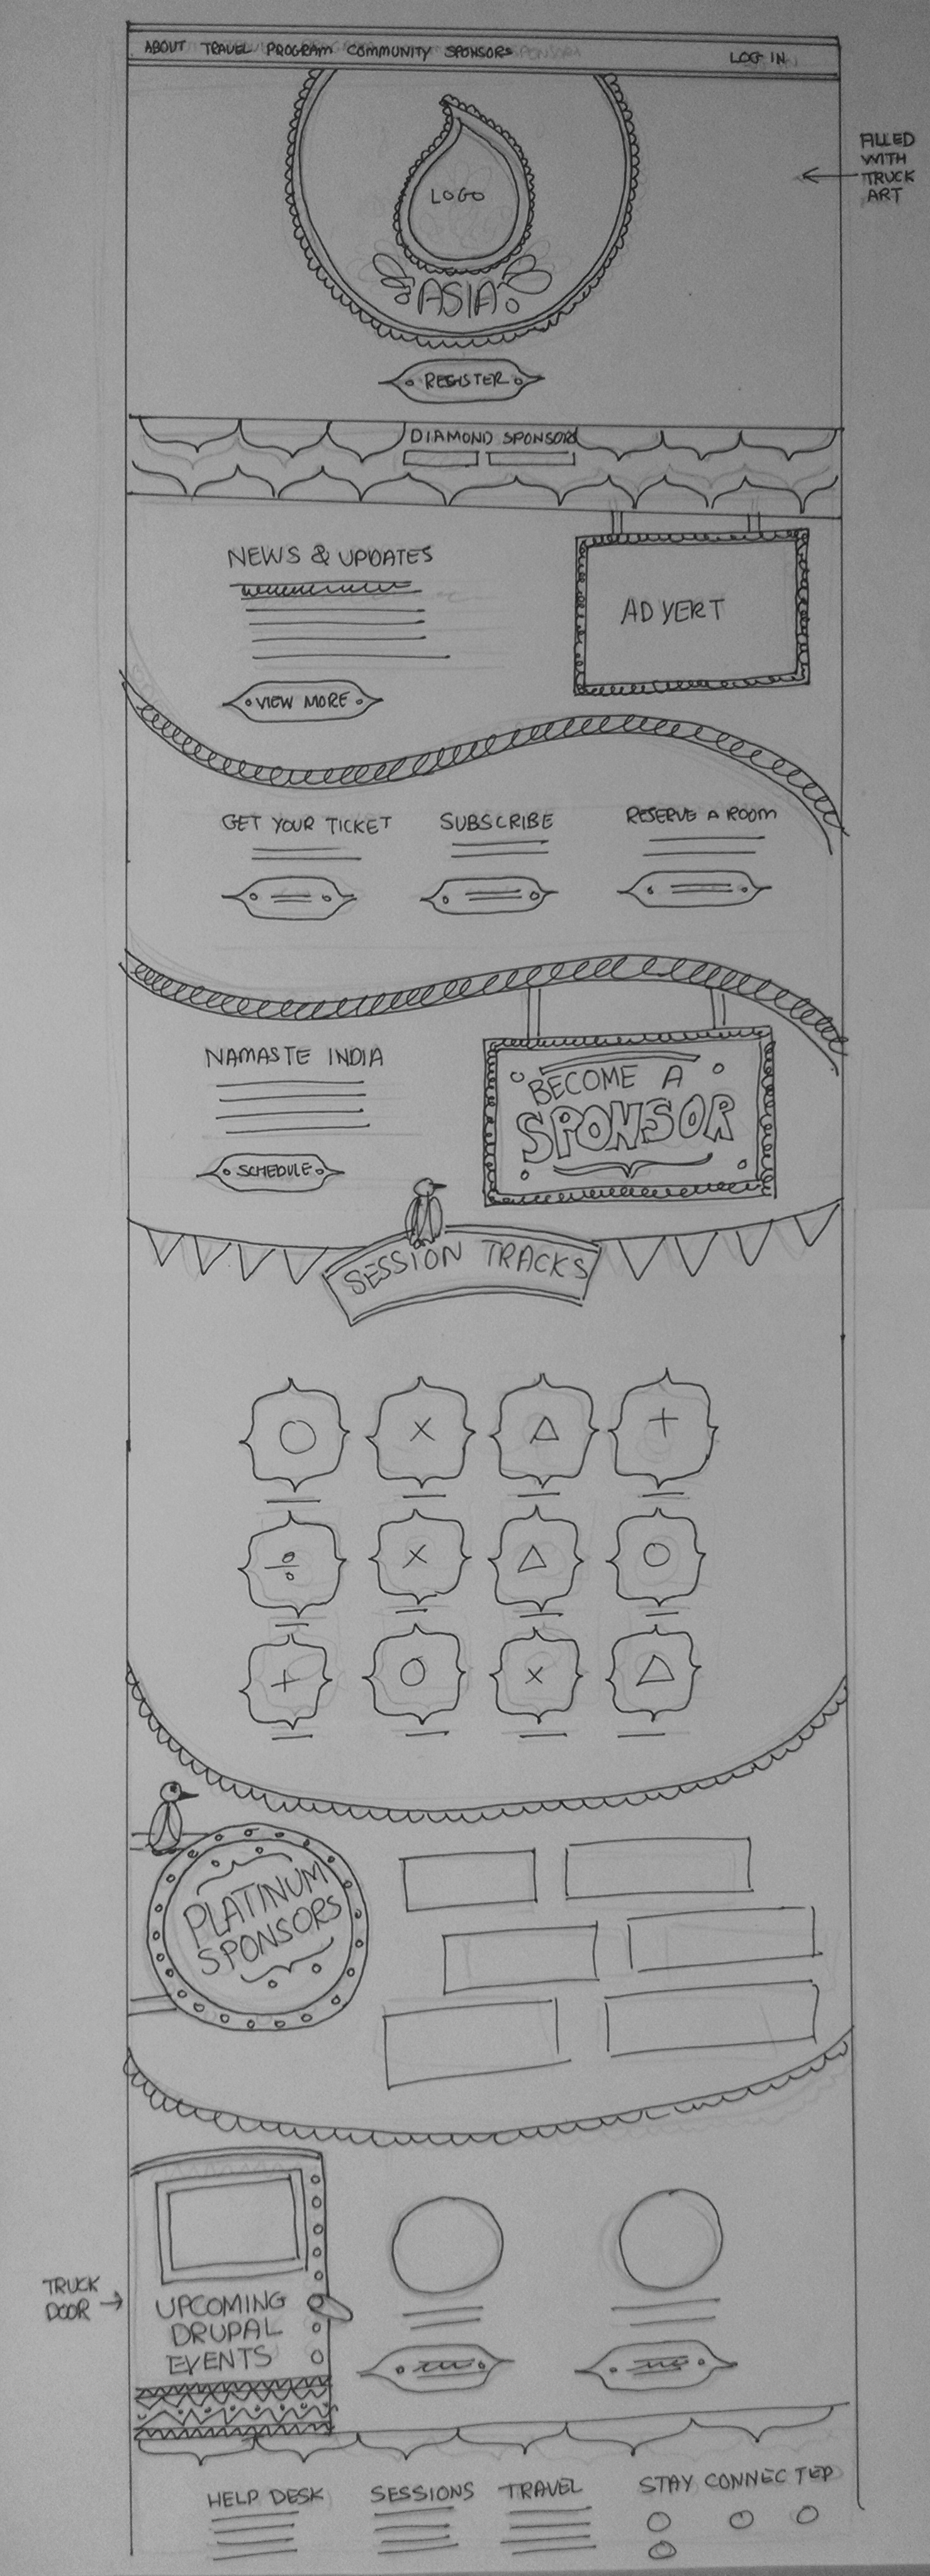 The initial sketch of the website